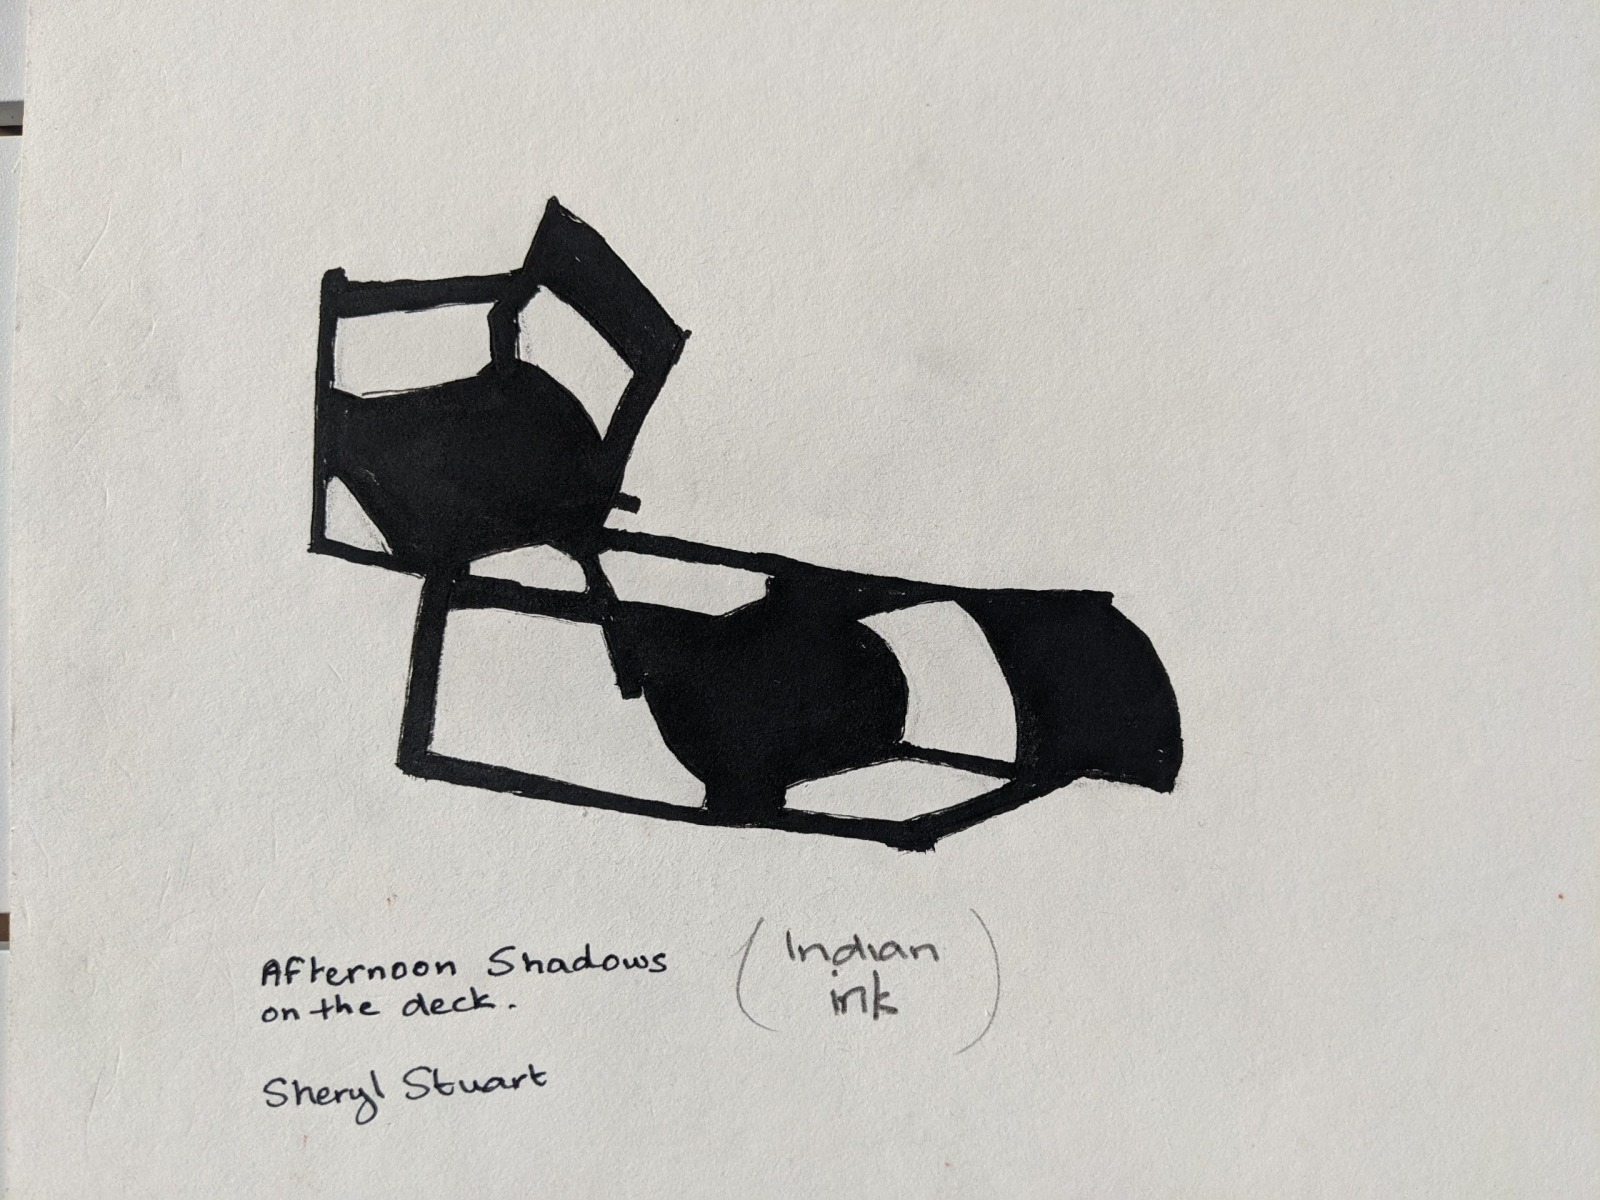 Sheryl Stuart - Afternoon Shadows on the Deck - Indian Ink